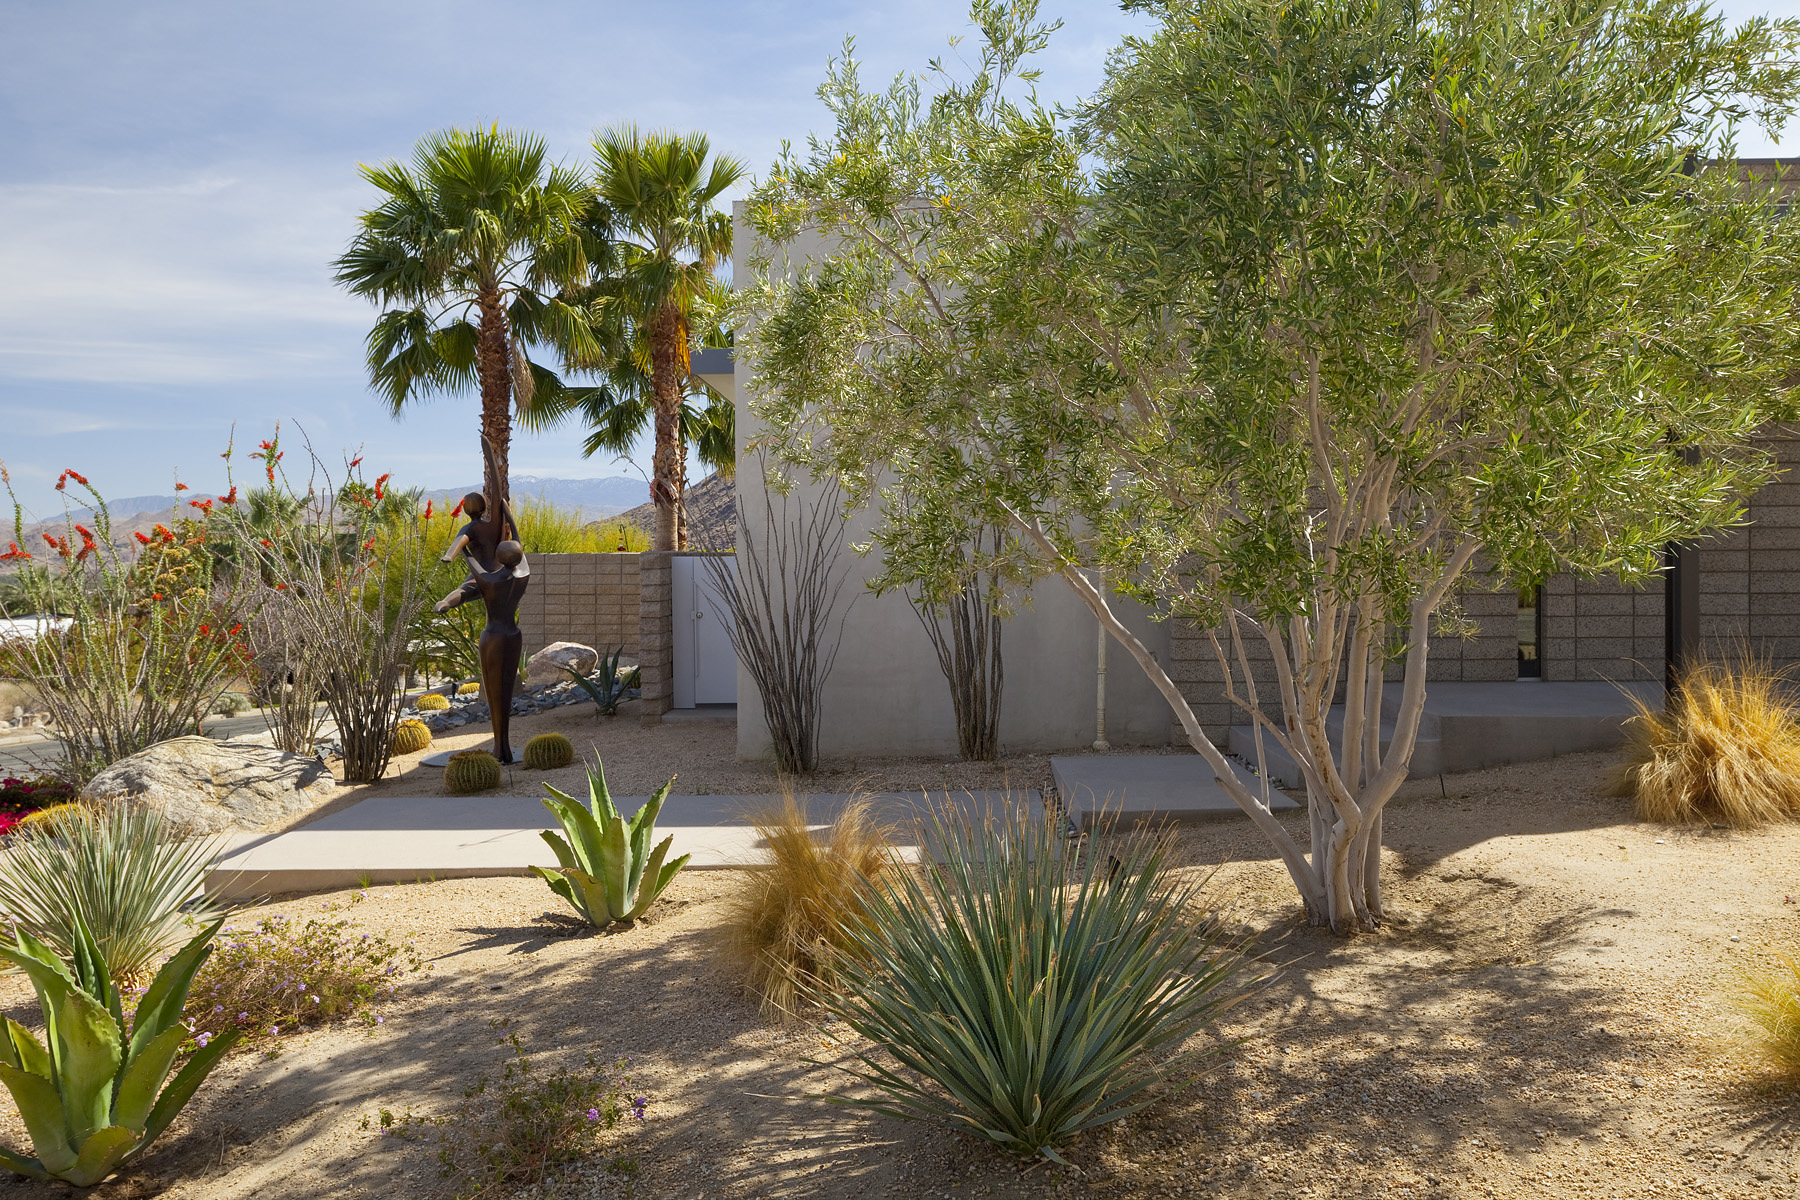 Exterior landscape photo, Palm Springs California.  Janie Fitzgerald architectural photography.